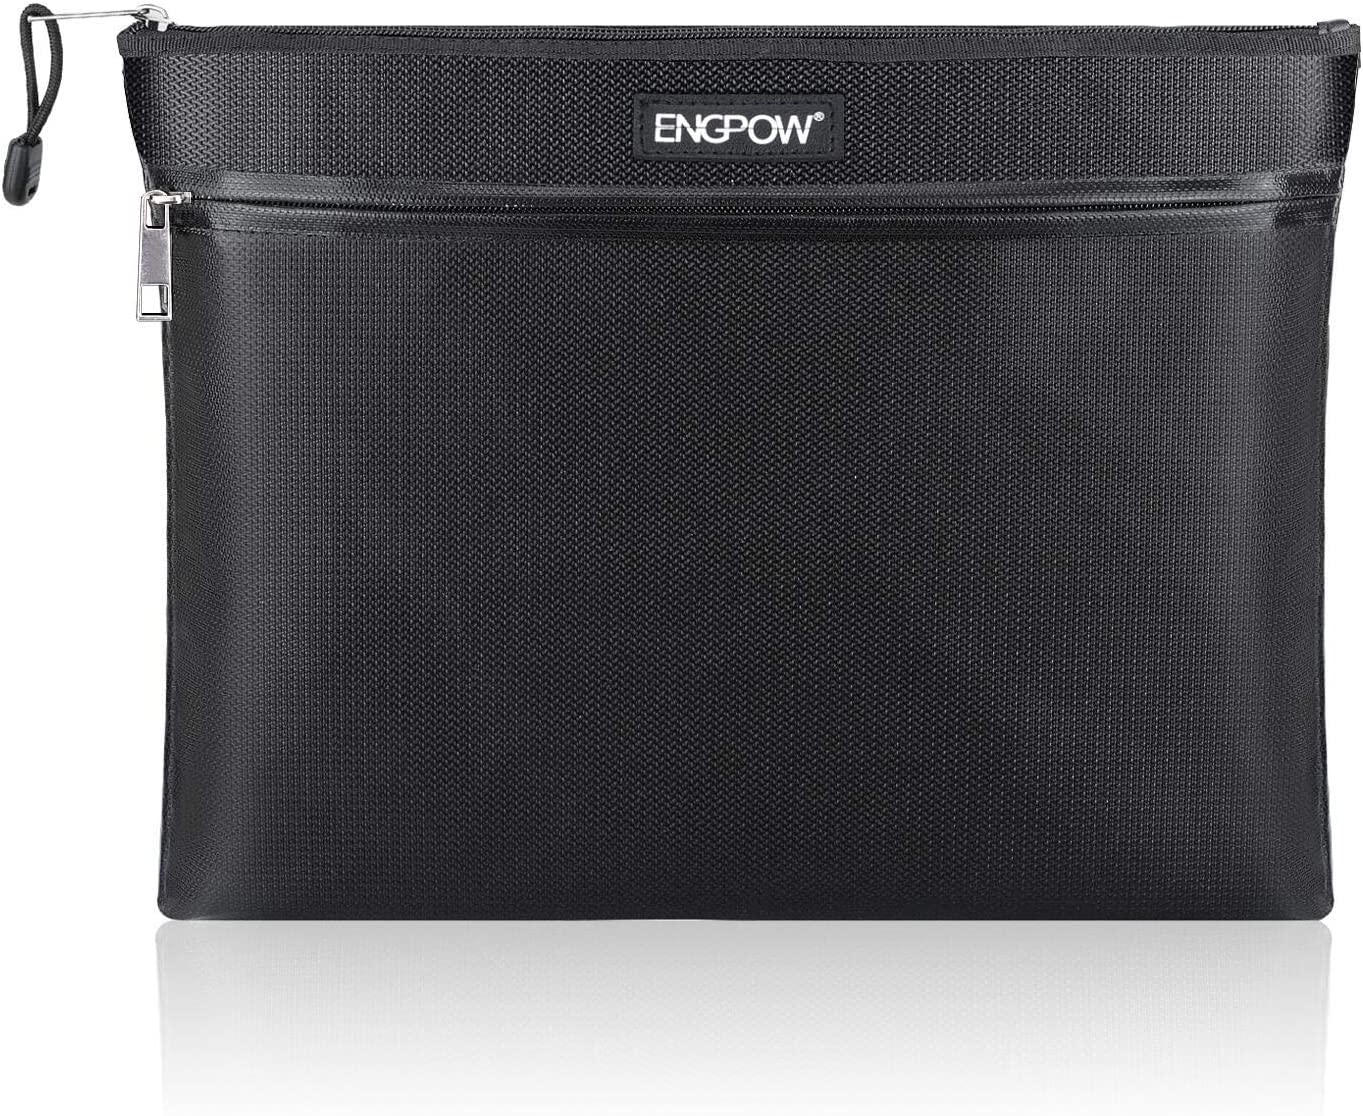 Fireproof Document Bag Two ENGPOW Zippers Max 77% OFF Cheap SALE Start Pockets